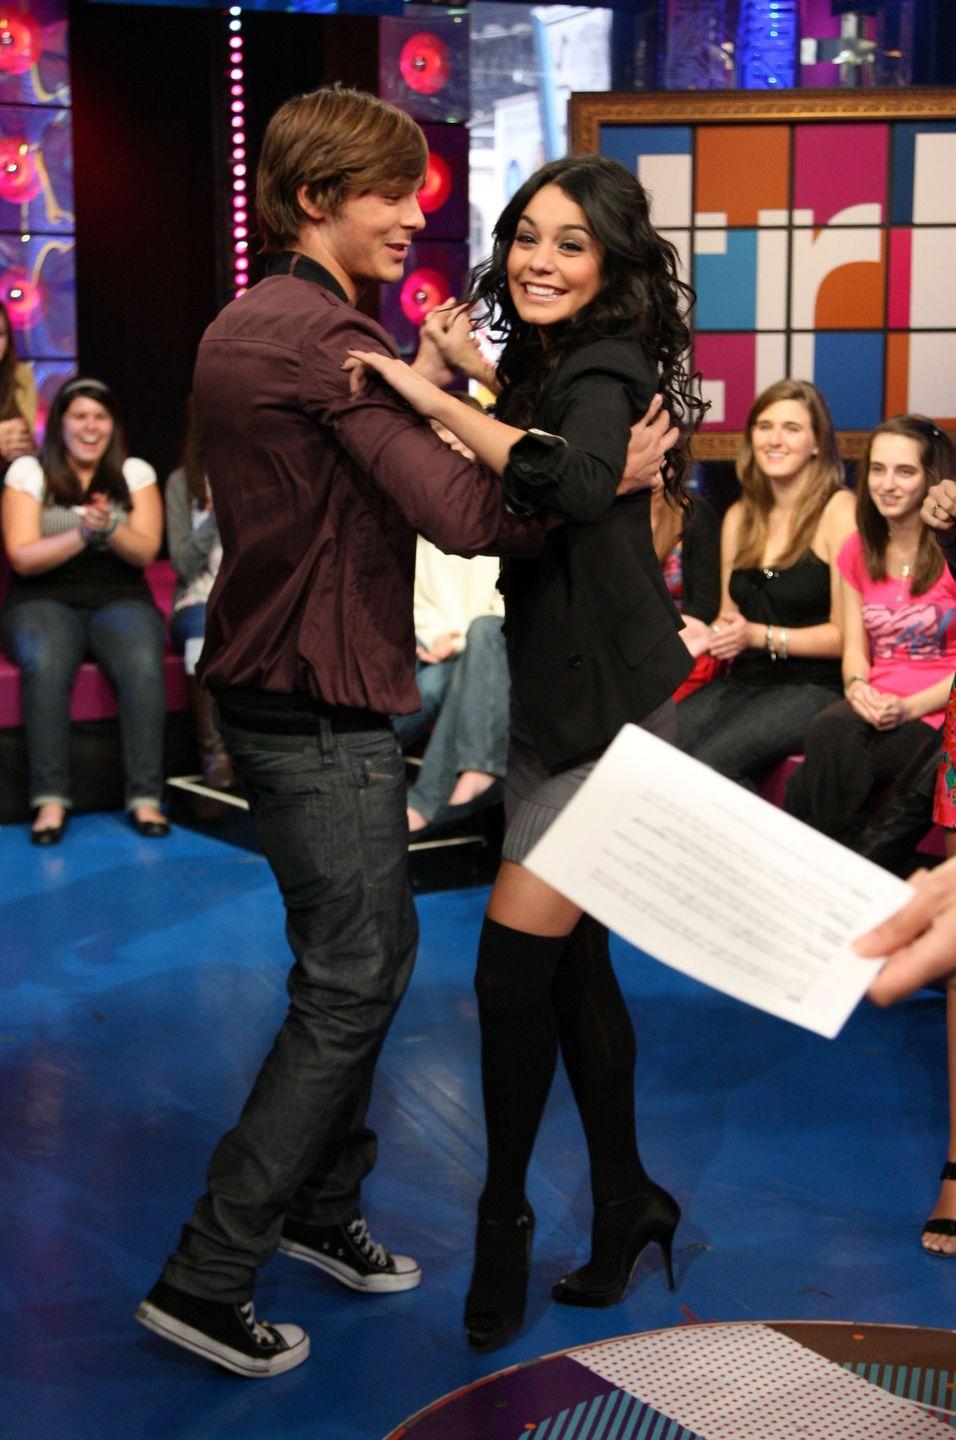 <p>Did you know he and Vanessa Hudgens danced together??!?!?!?! Exactly.</p>